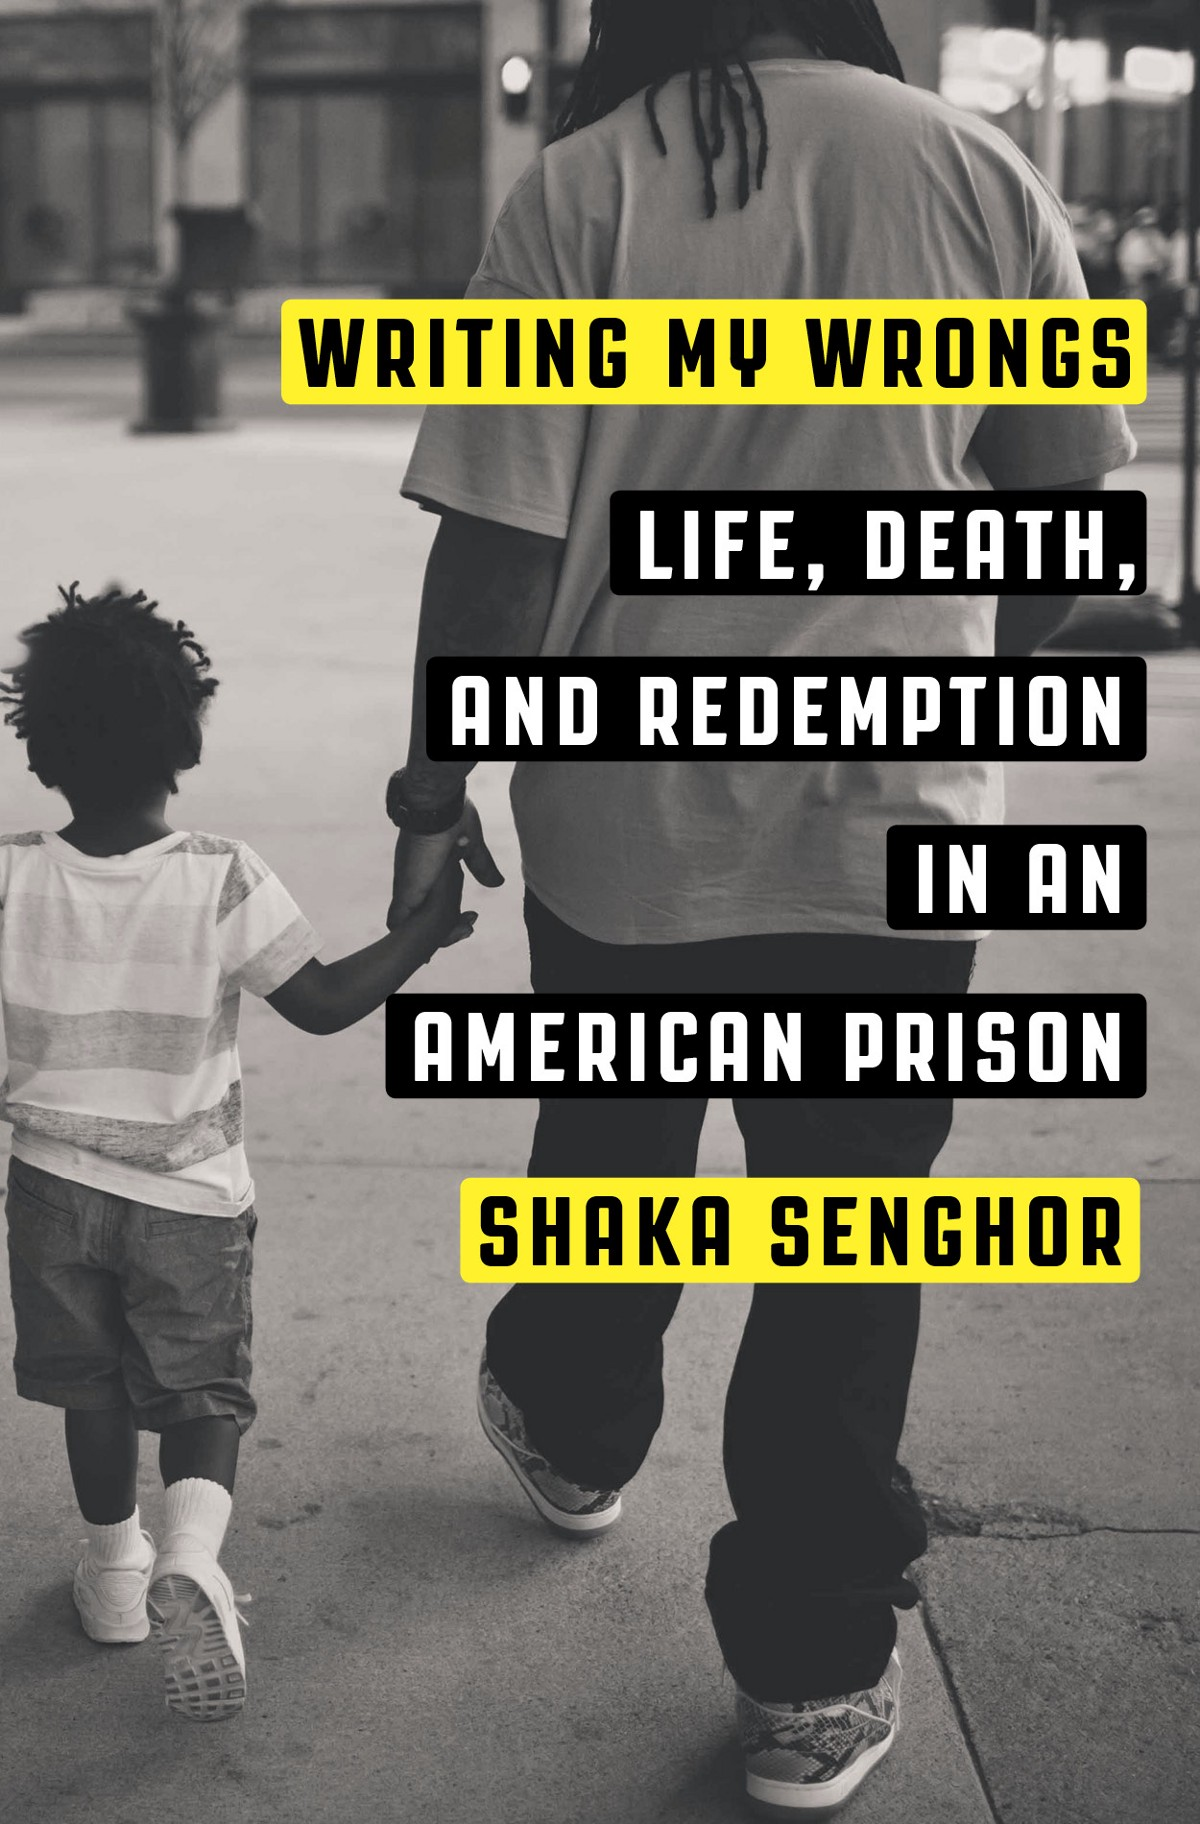 shaka senghor medium